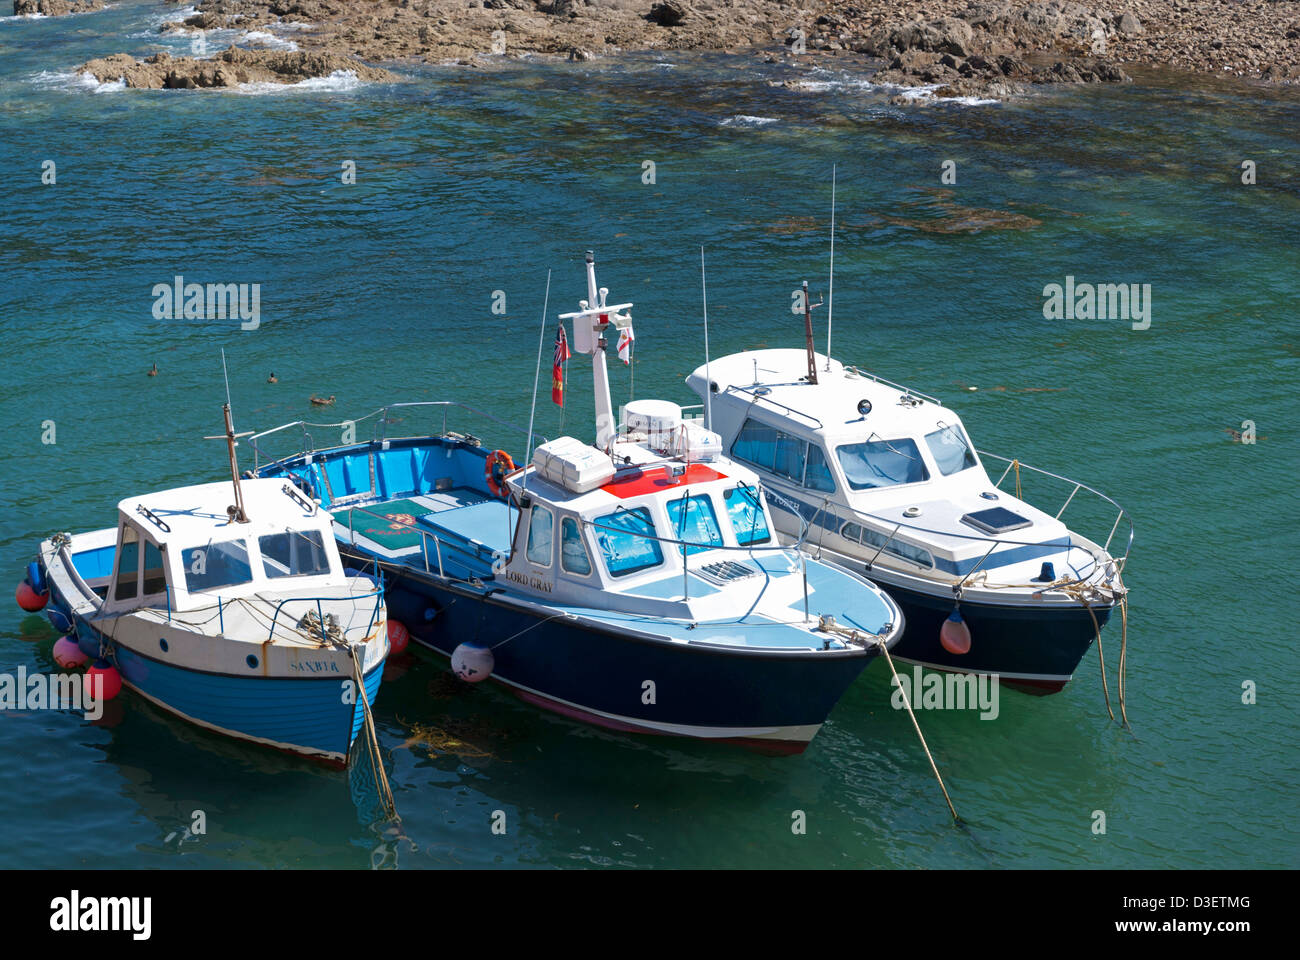 Three small fishing boats in the harbour at Bonne Nuit bay, Jersey, Channel Islands, UK - Stock Image